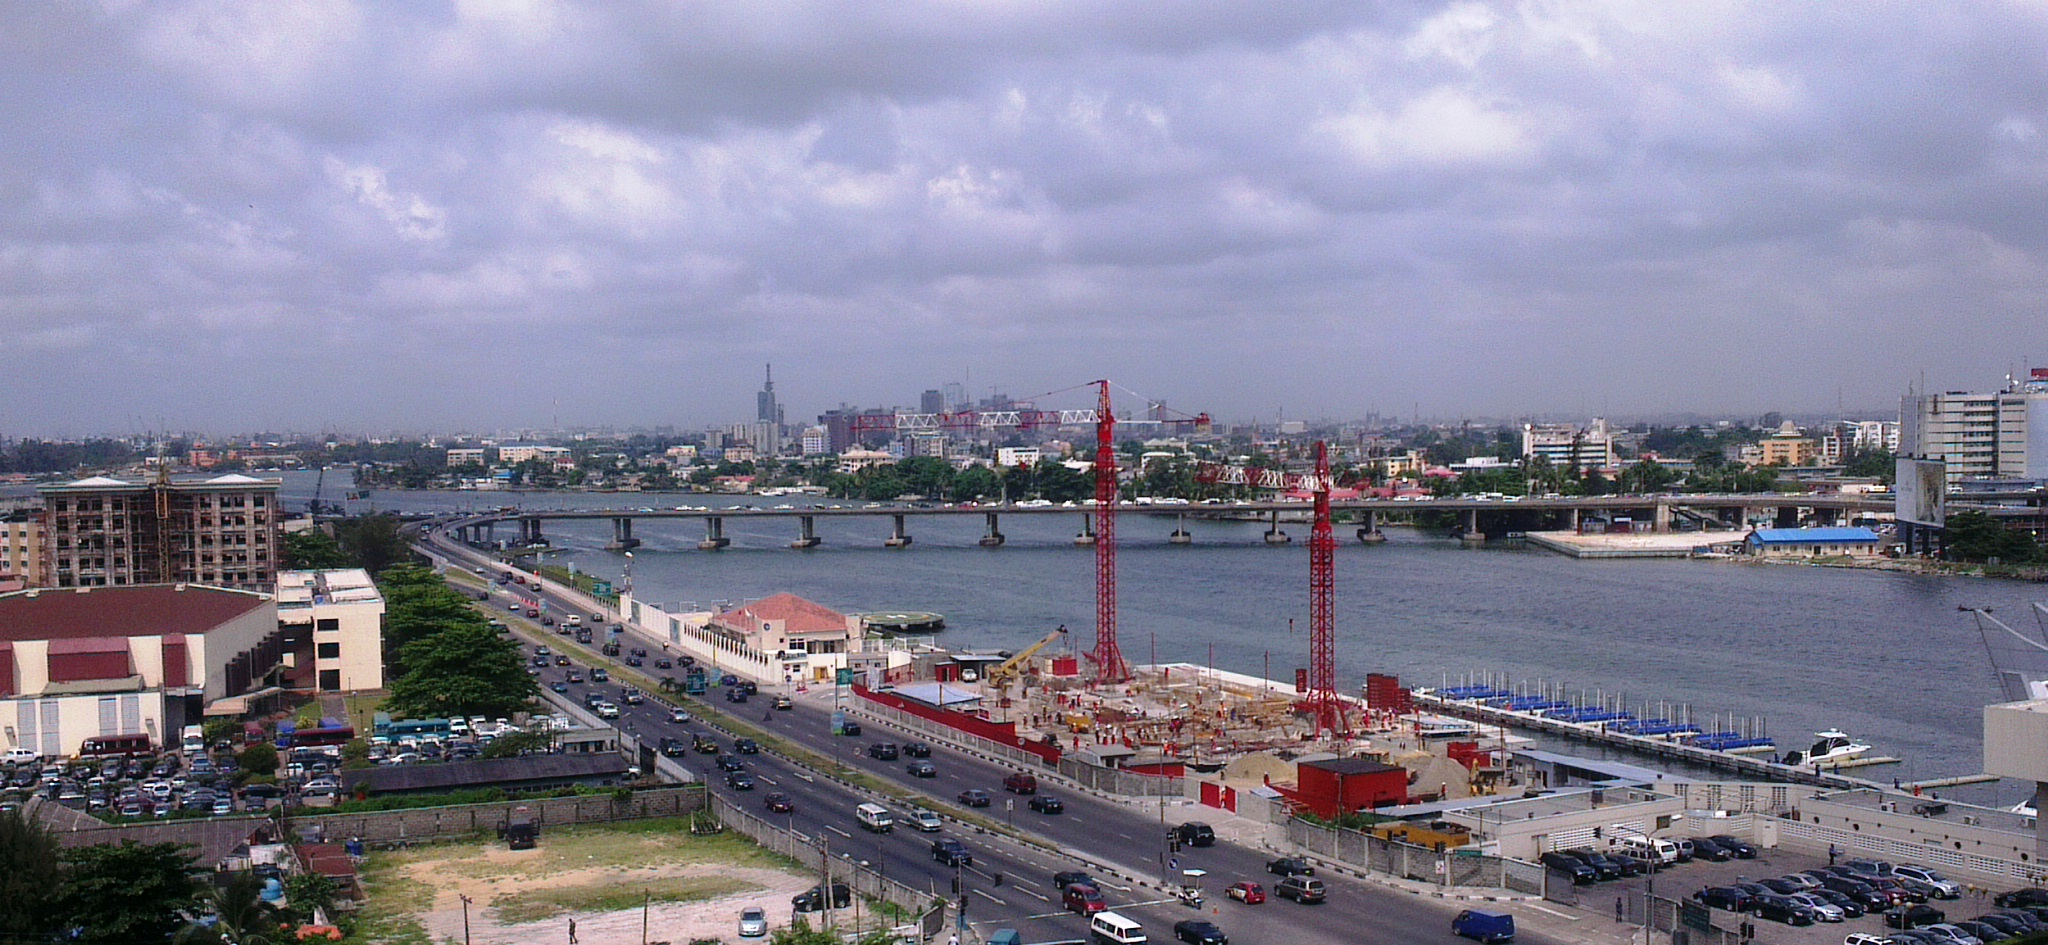 Lagos – Life in an African mega-city